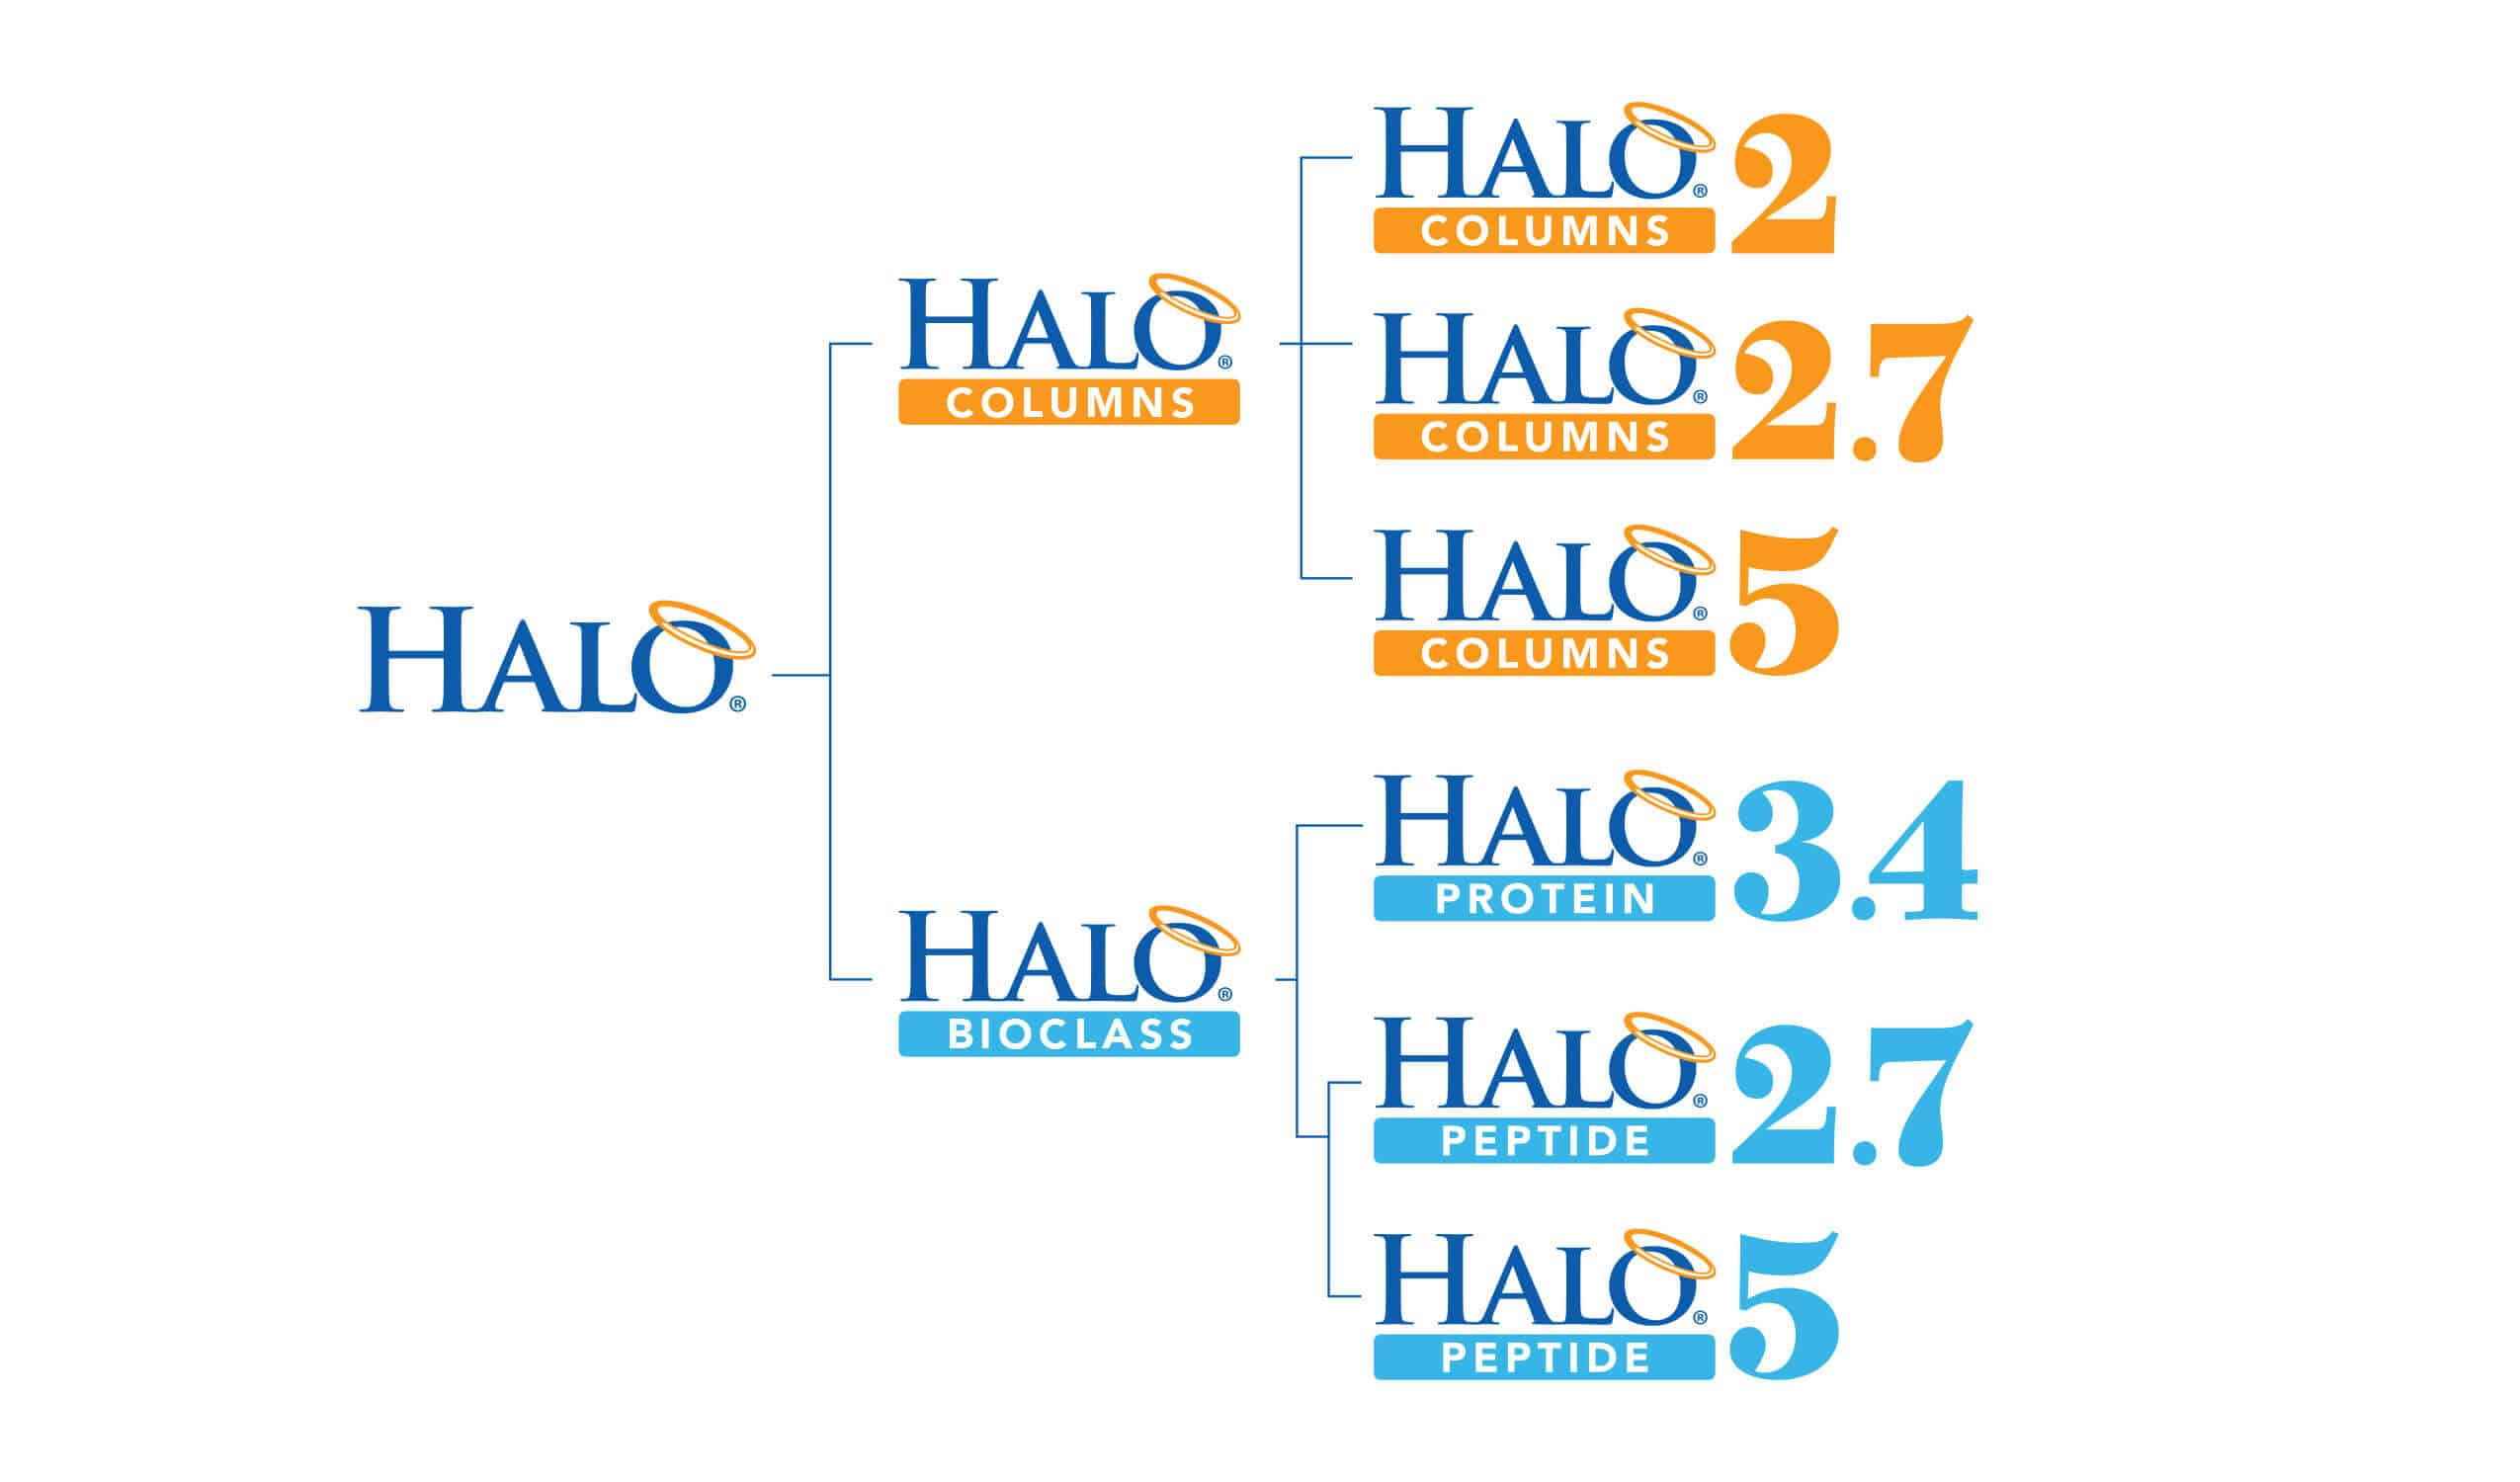 AMT Halo2 Naming hierarchy